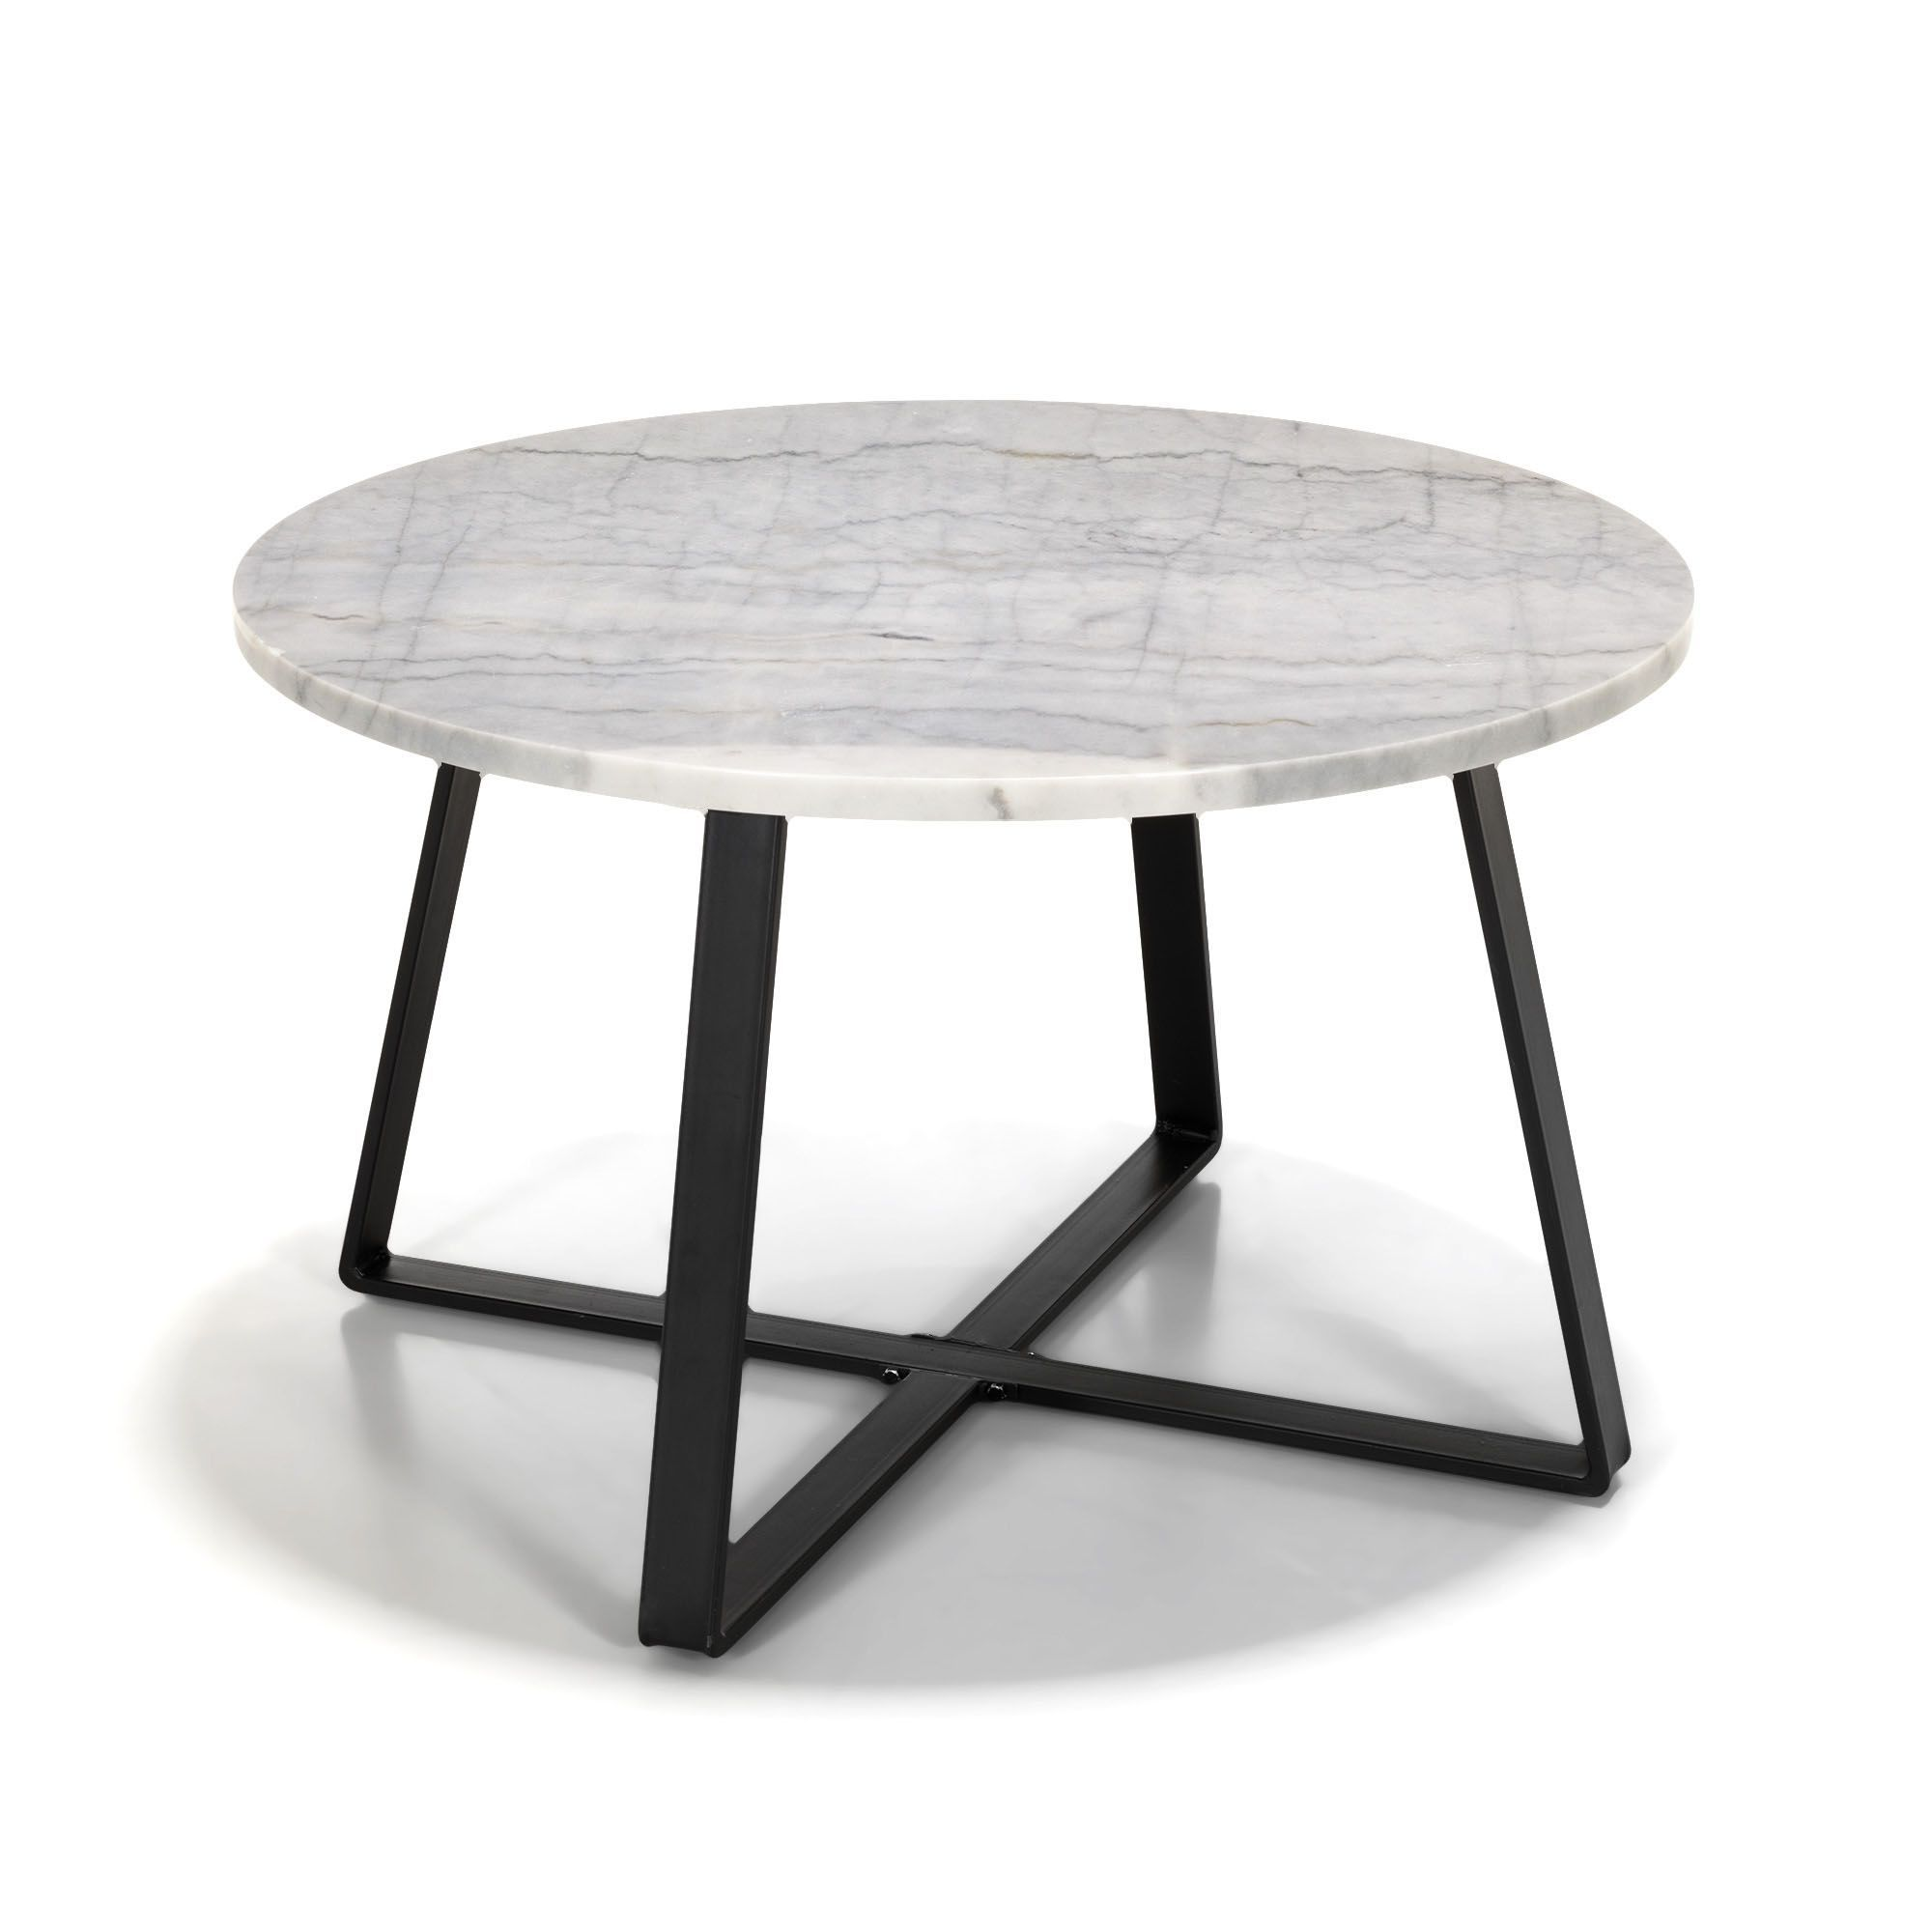 Table Basse Ronde Alinea